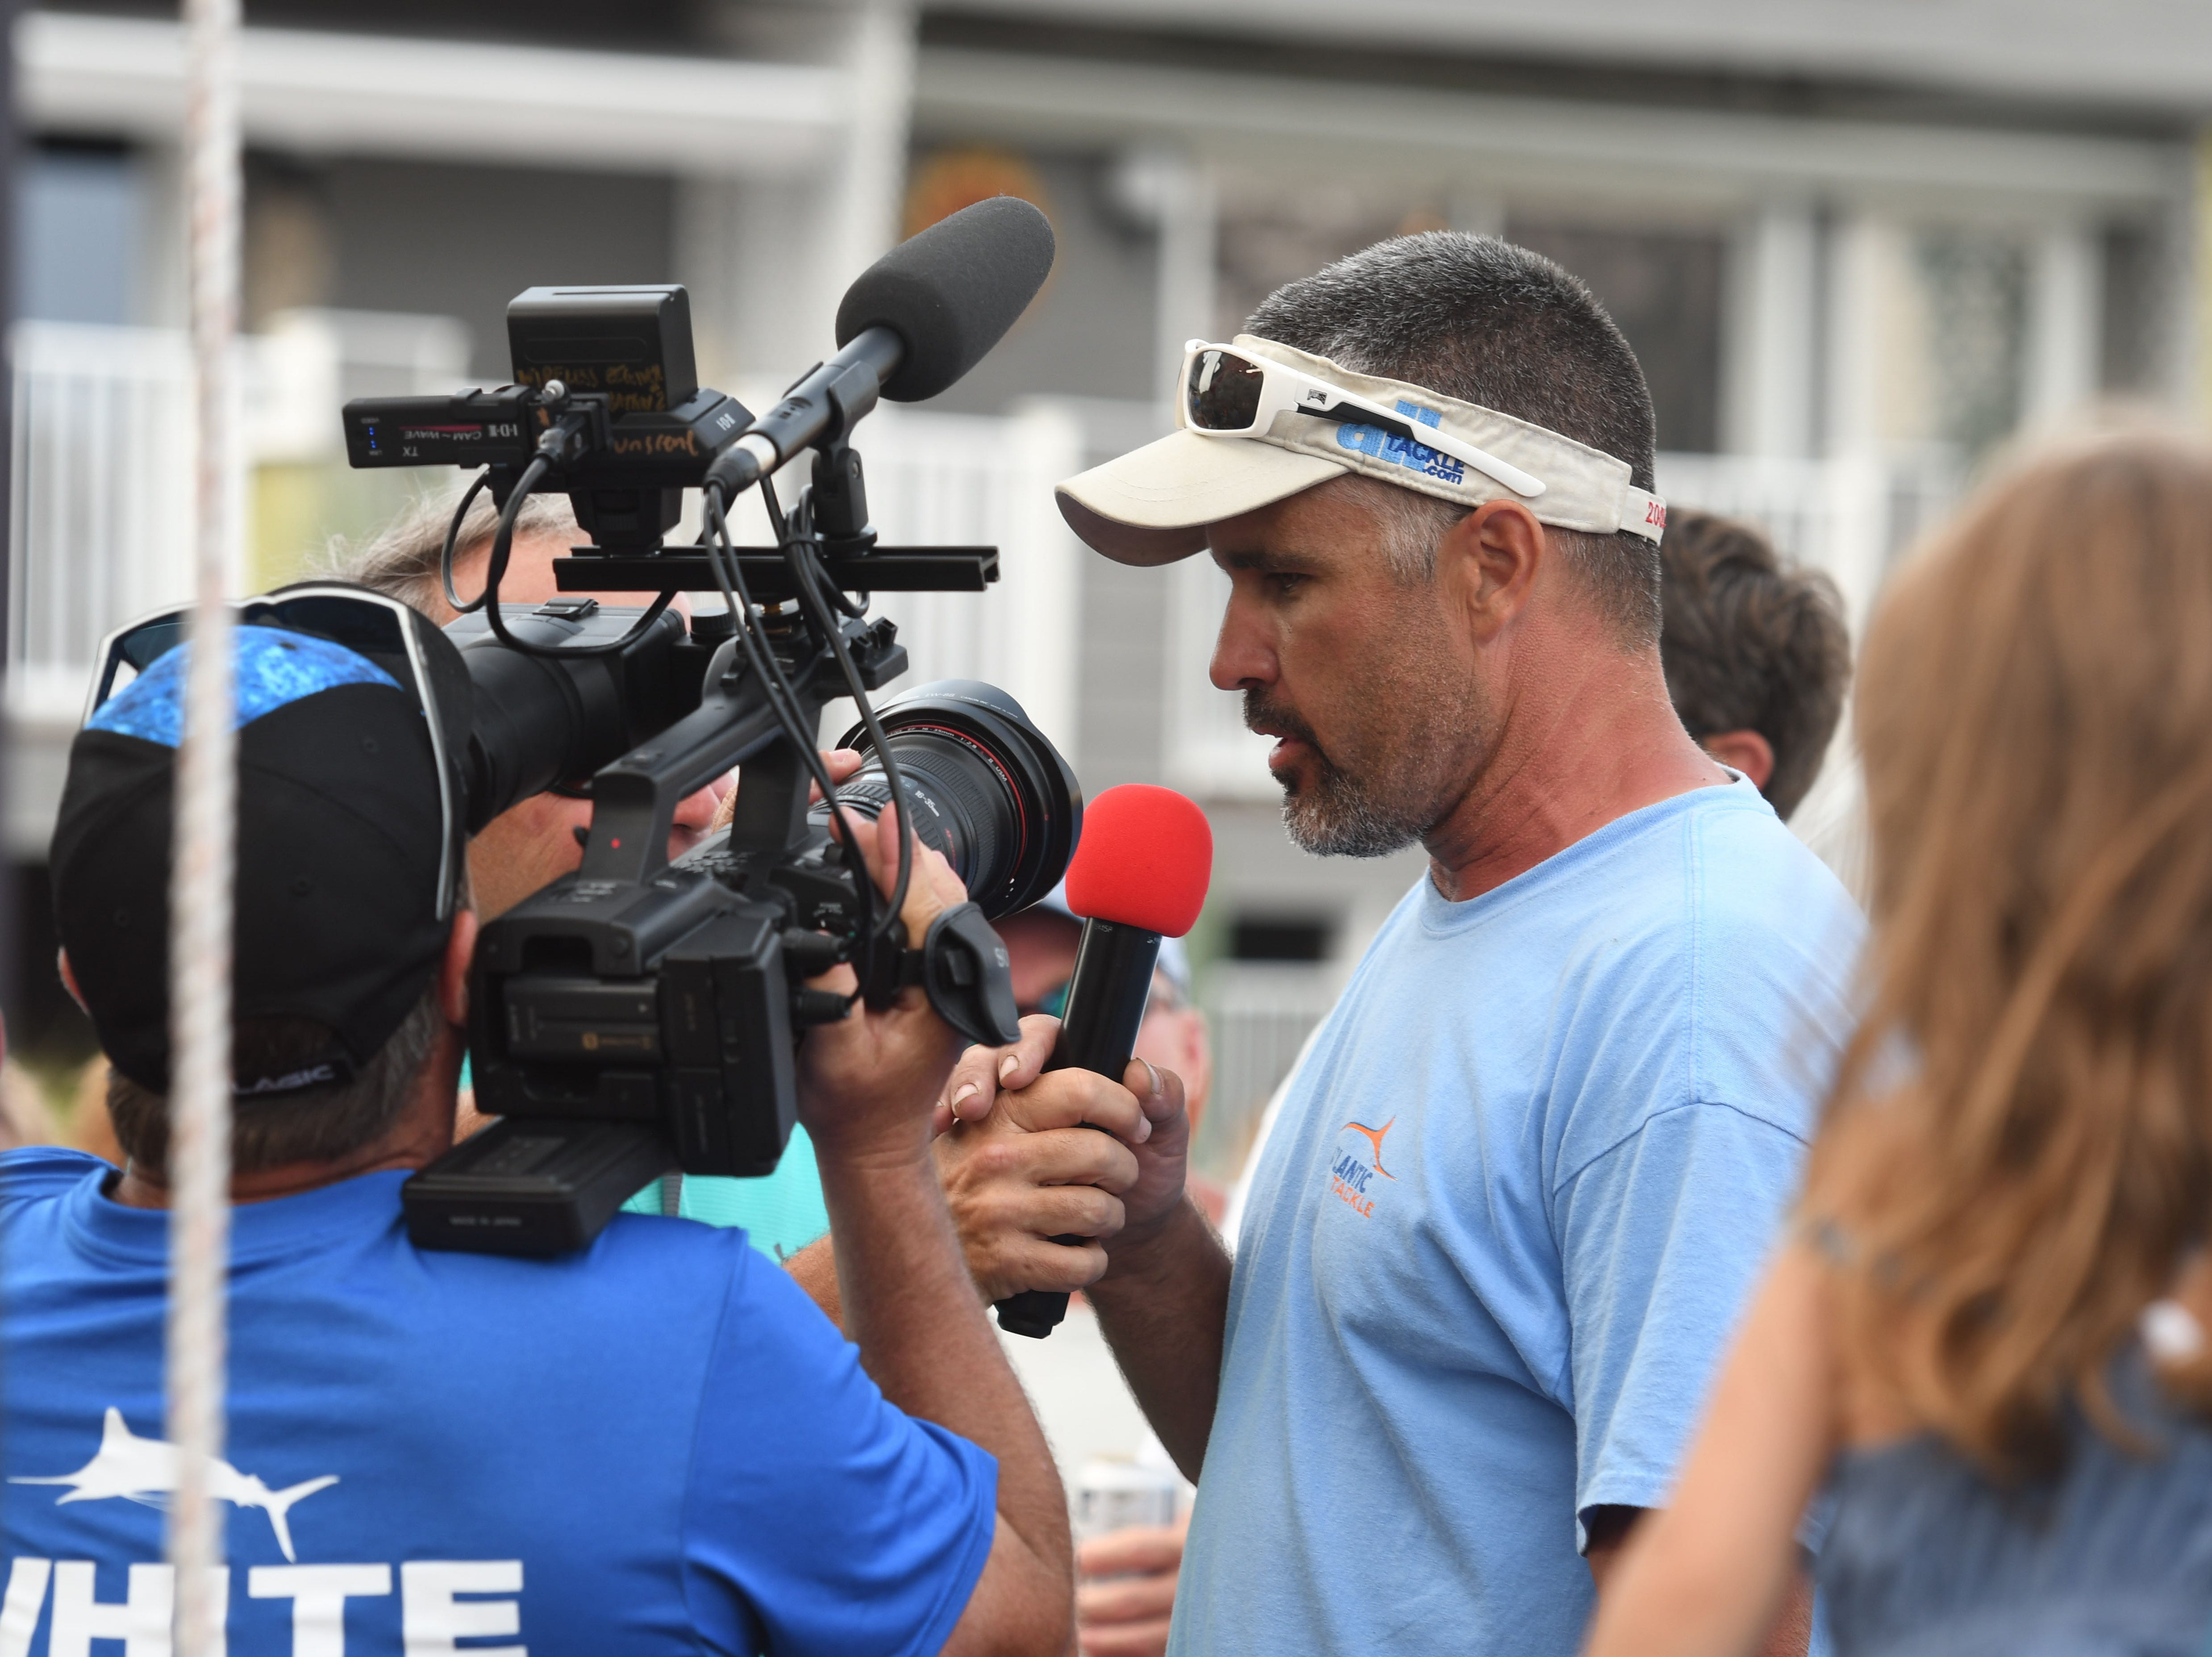 Angler Kevin Graybill talks about his 63 pound Wahoo that was caught aboard the Over Board. It now takes over the first place spot during 45th Annual White Marlin Open in Ocean City, Md. on Friday, August 10, 2018.